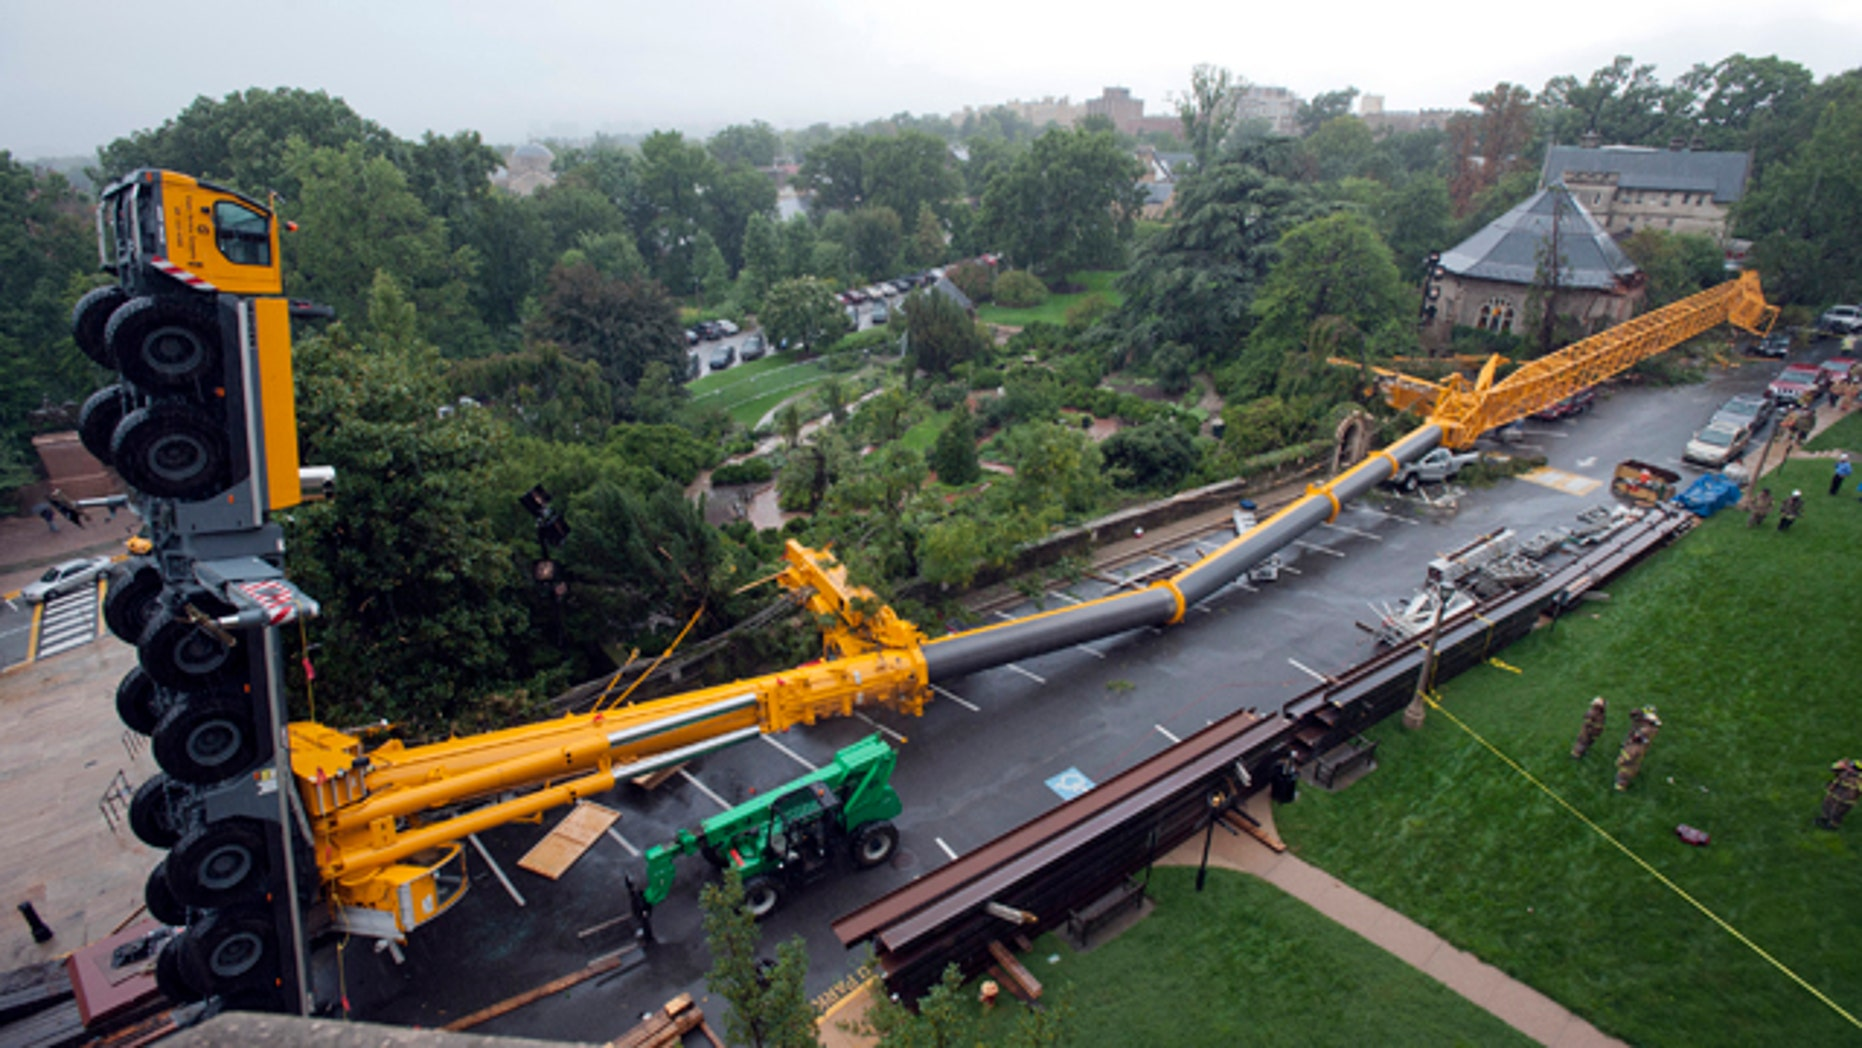 This image released the the National Cathedral shows a 500-ton crane that was doing repair work caused by the Aug. 23 east coast earthquake after it collapsed Wednesday, Sept. 7, 2011, at the Washington National Cathedral in Washington.